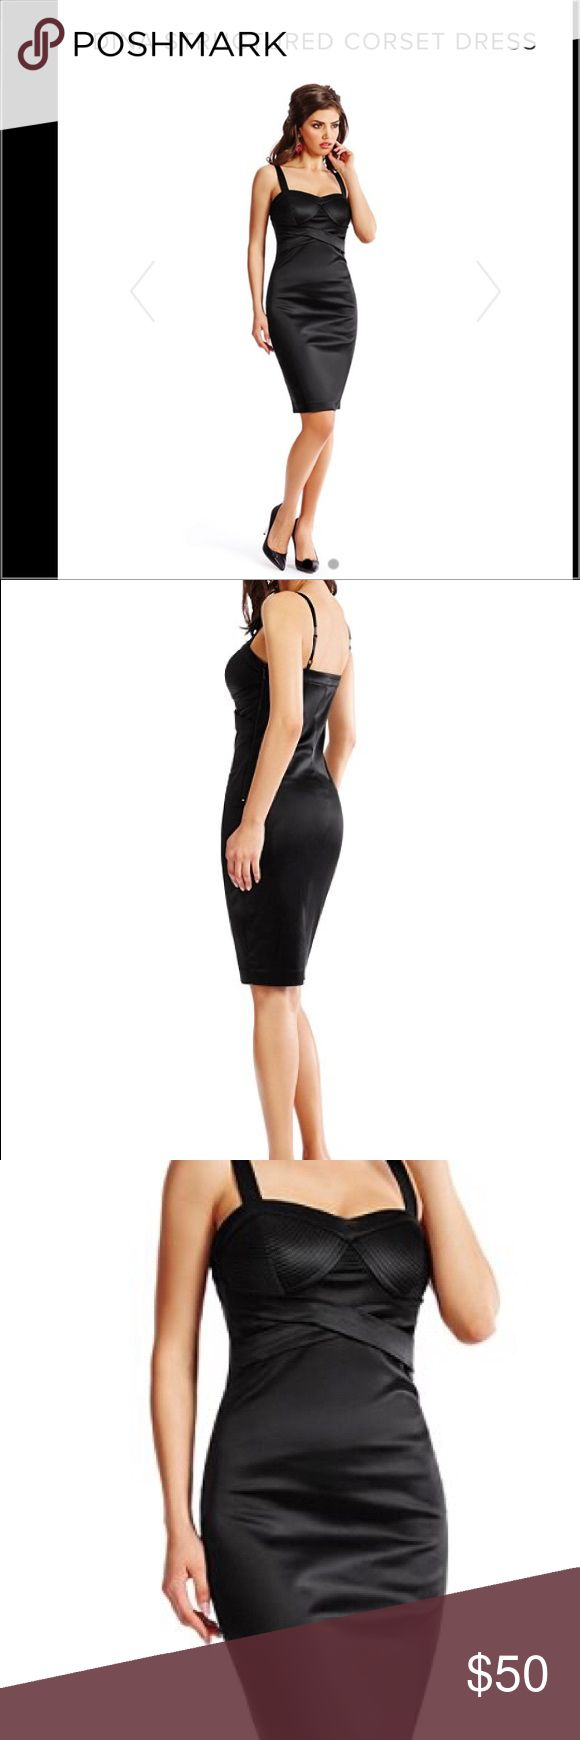 Guess by Marciano Dina Structured Corset Dress Beautiful Coset Dress NWT Marciano Dresses Midi